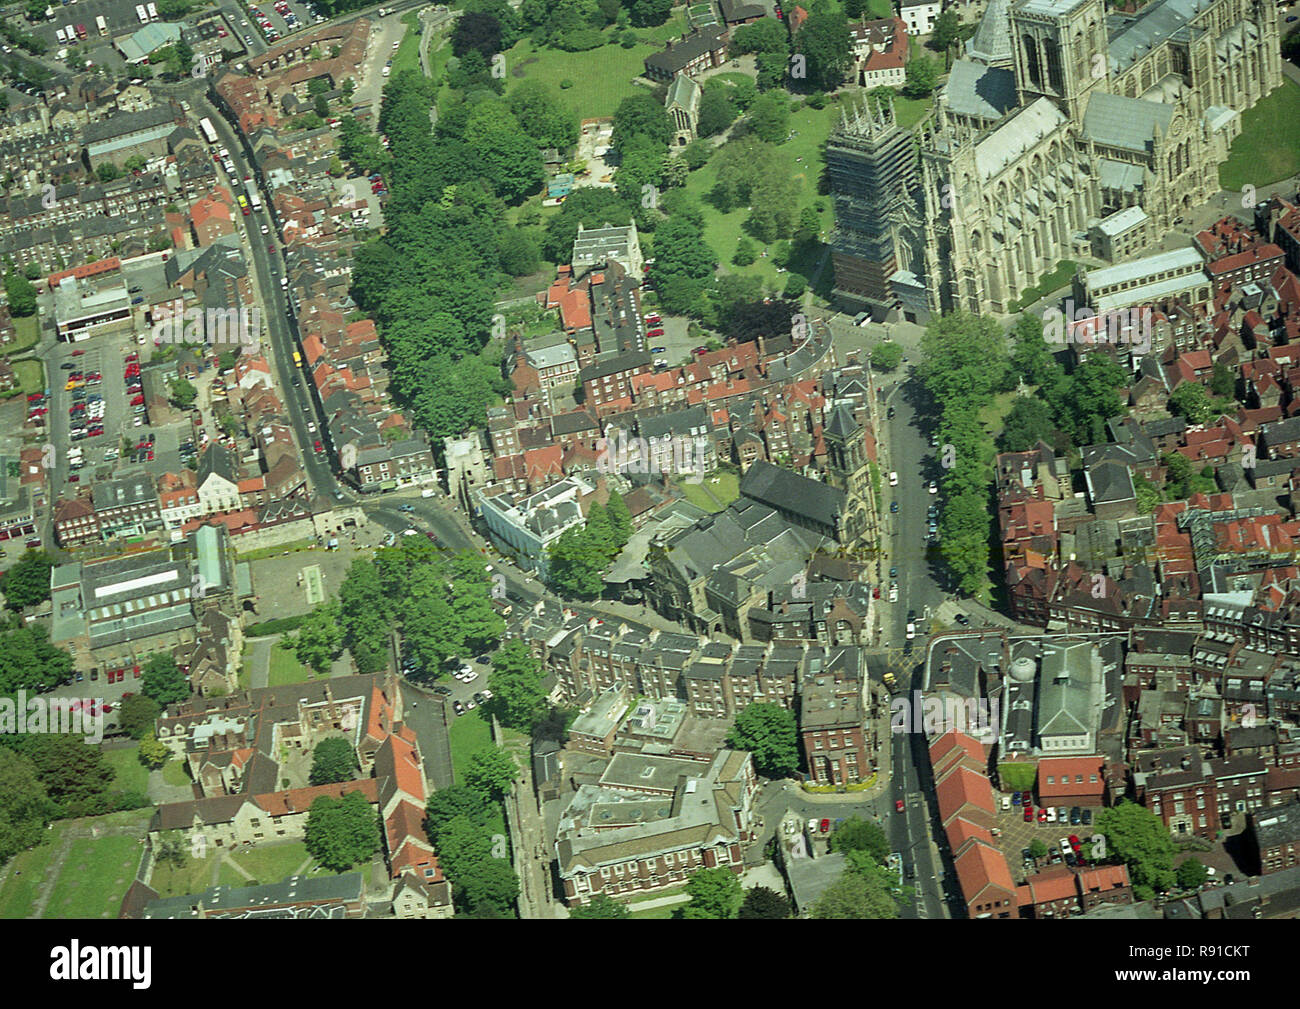 Aerial photo of the City of York showing York Minster - Stock Image